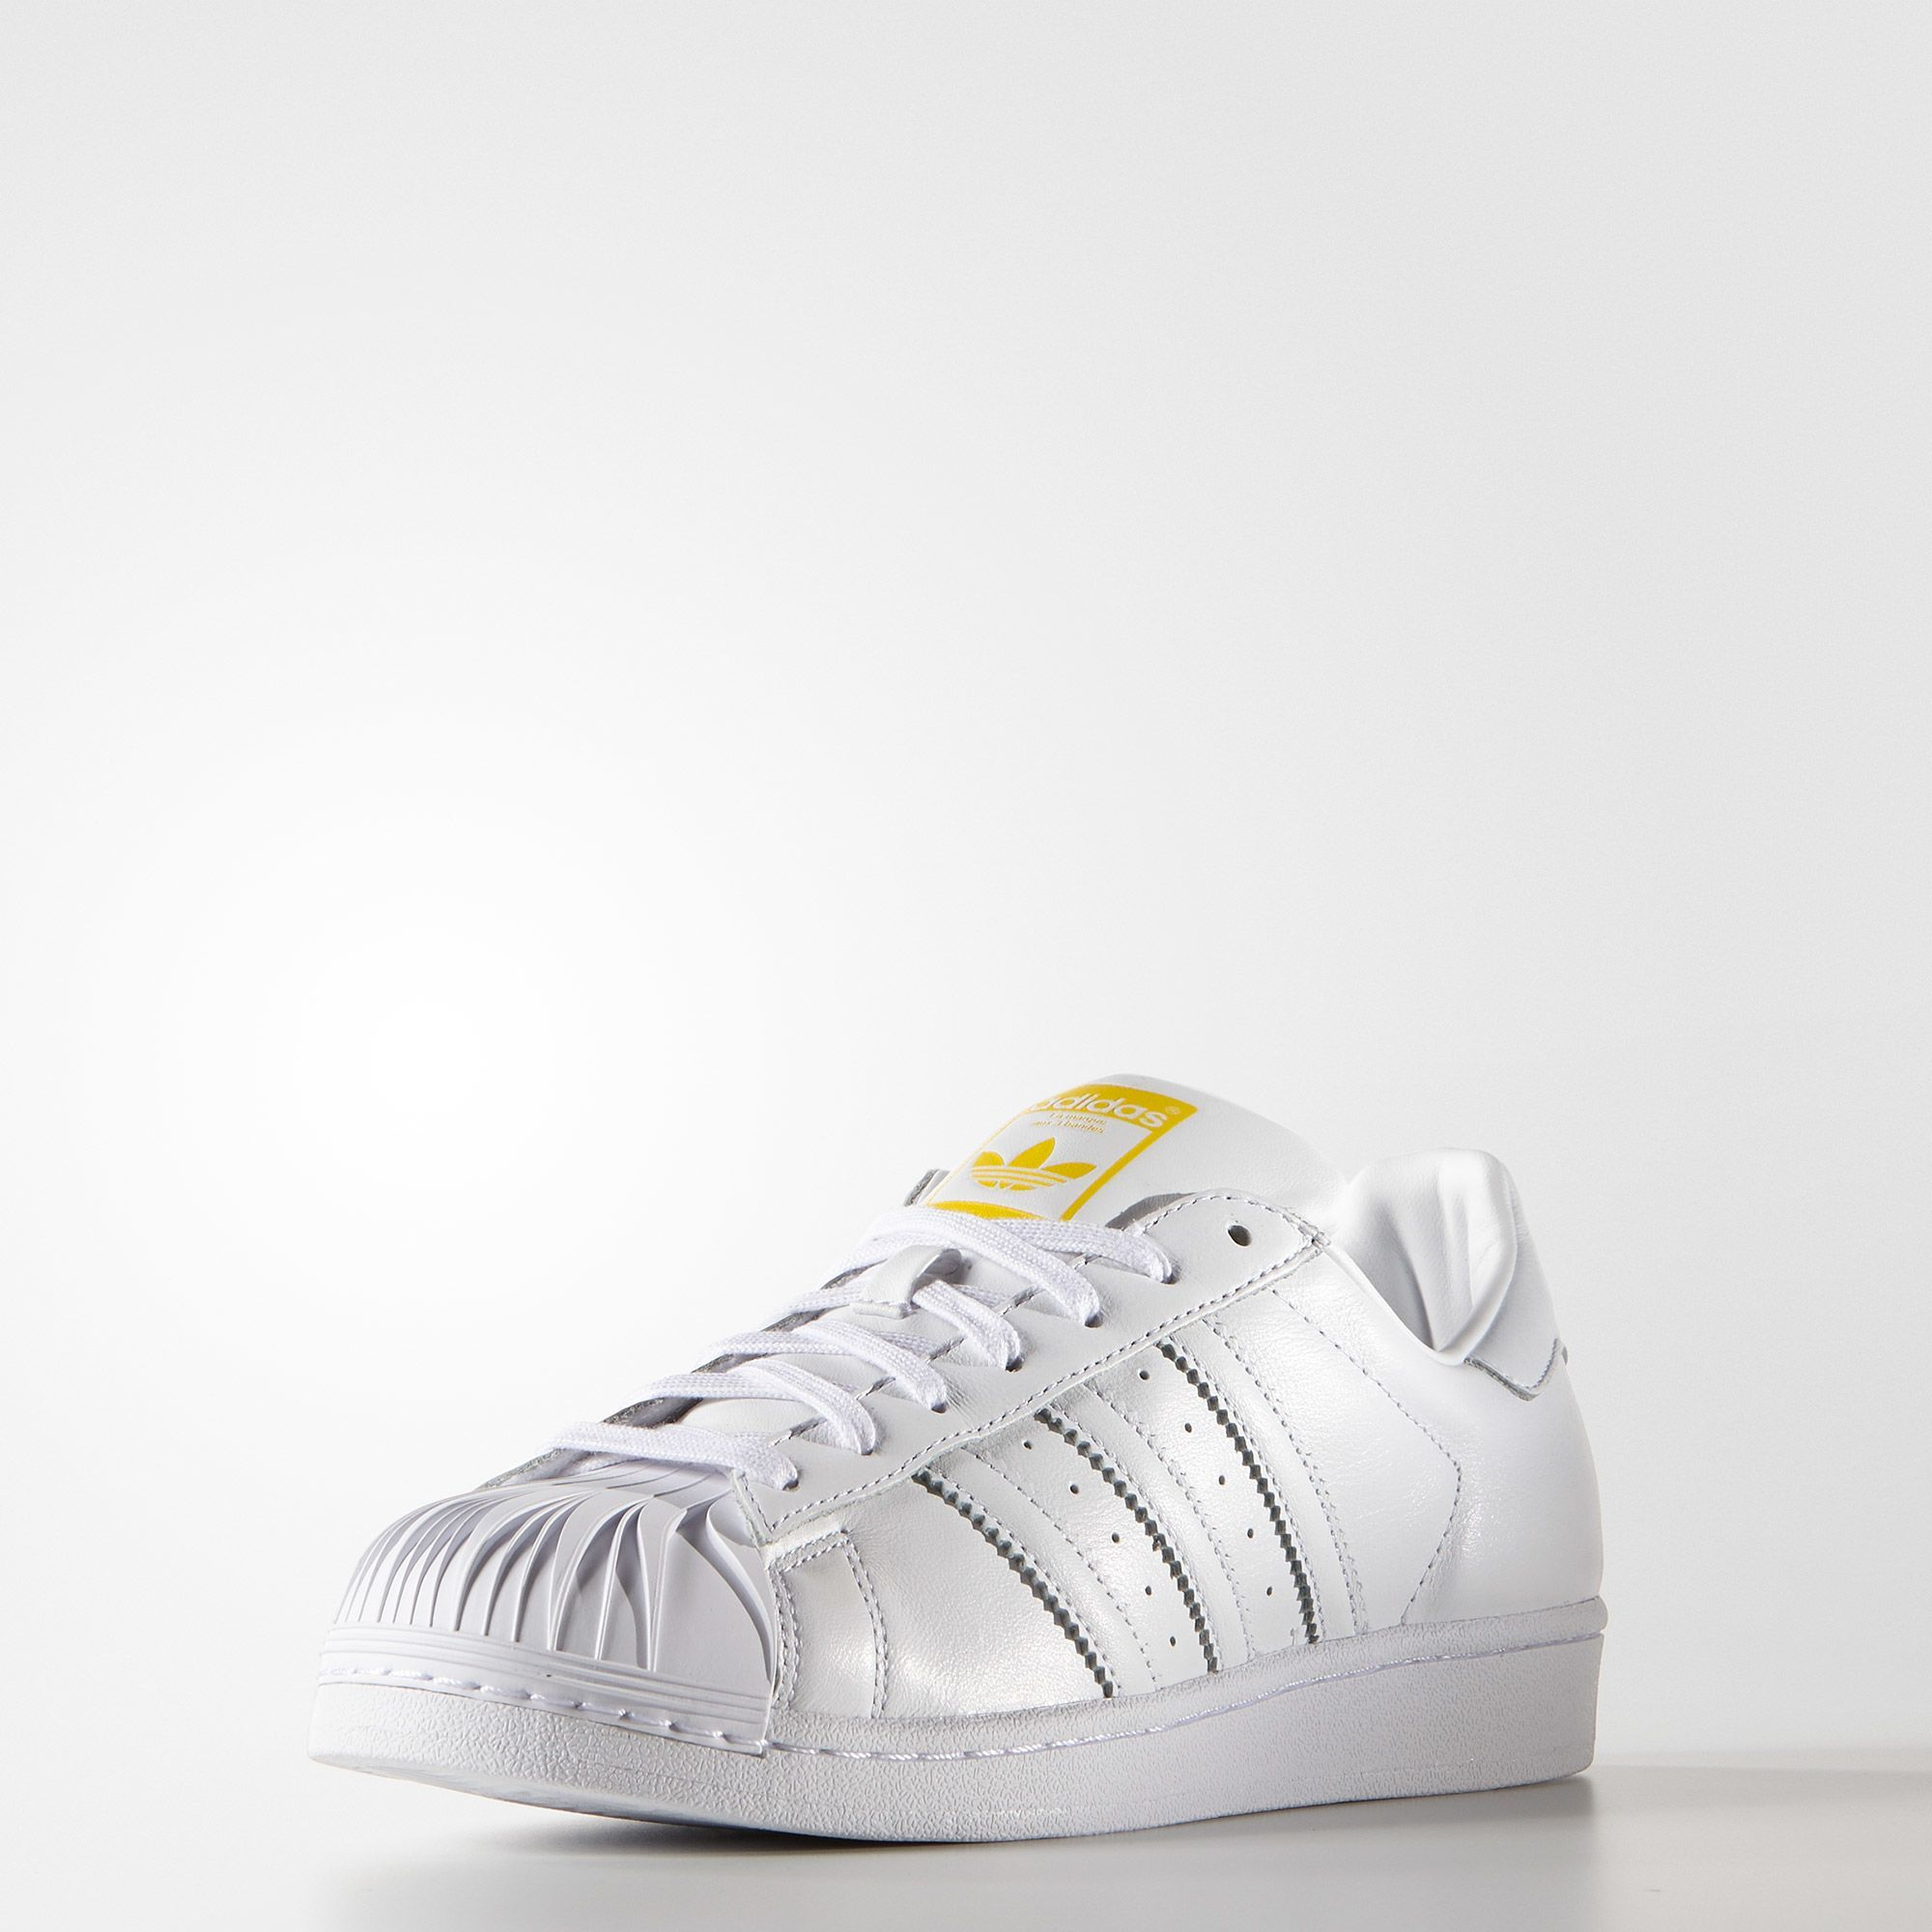 Adidas x Zaha Hadid. Superstar Supershell Shoes